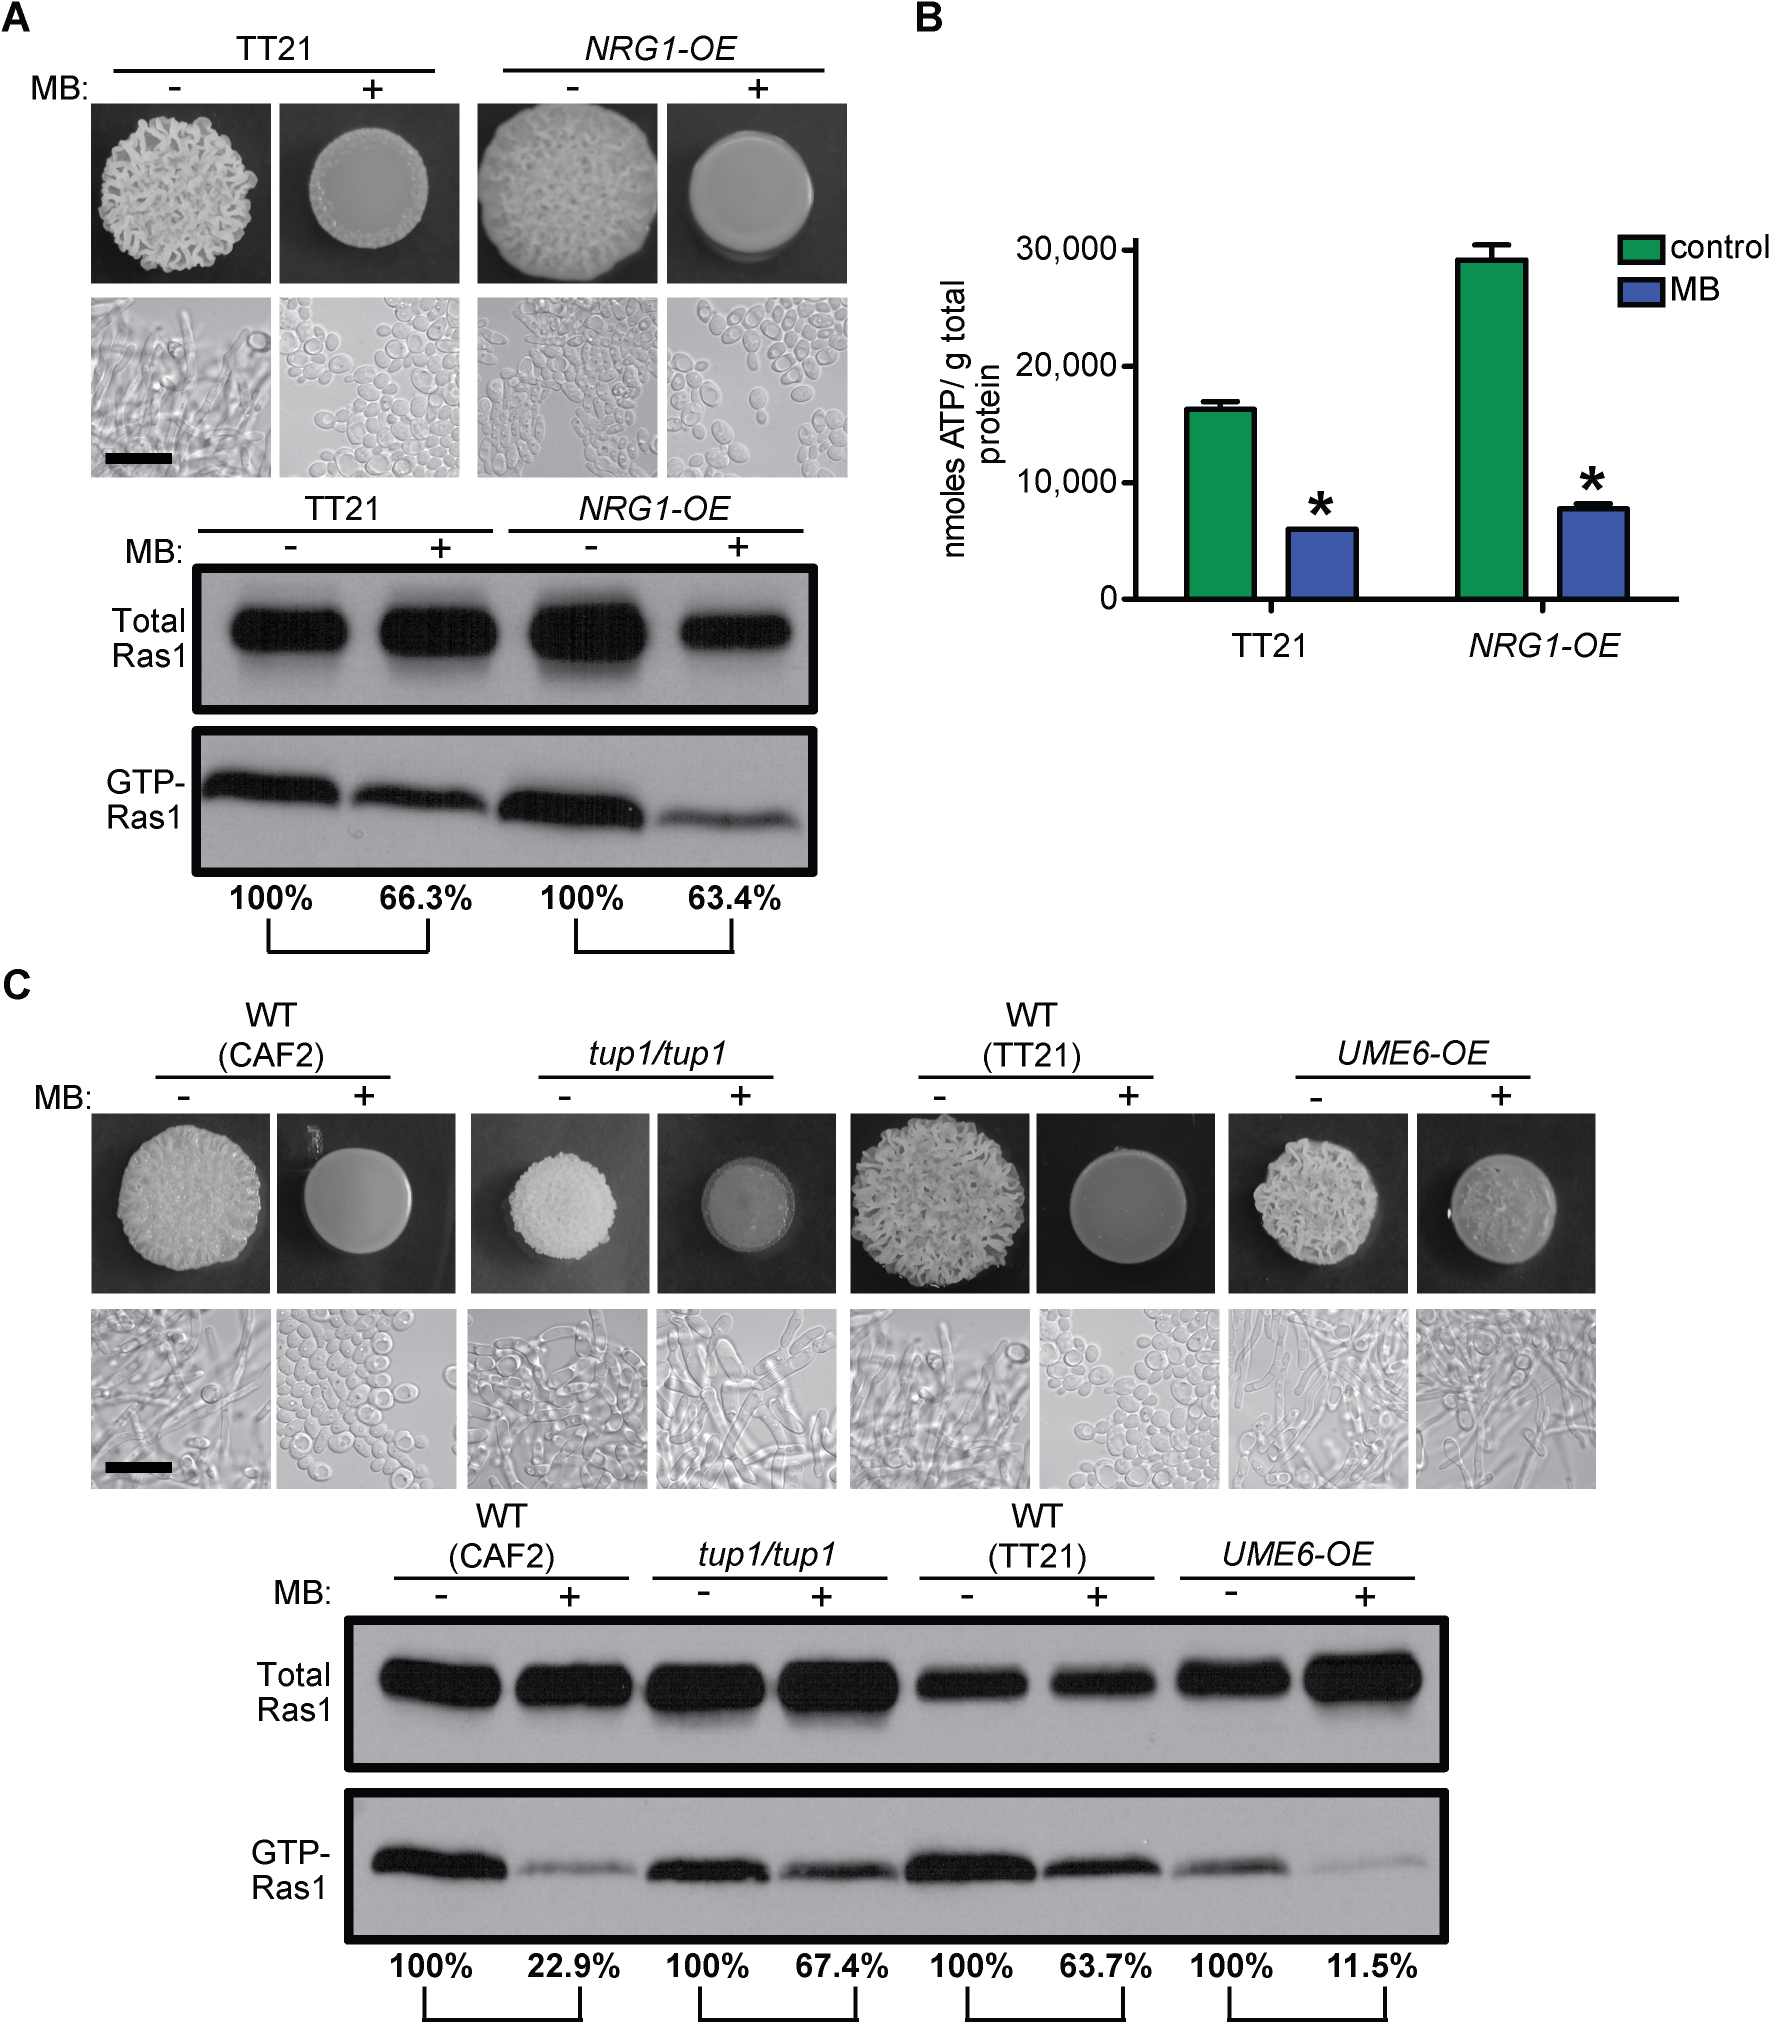 MB effects on Ras1 signaling are independent of the morphological switch and the blockage of other pathways.